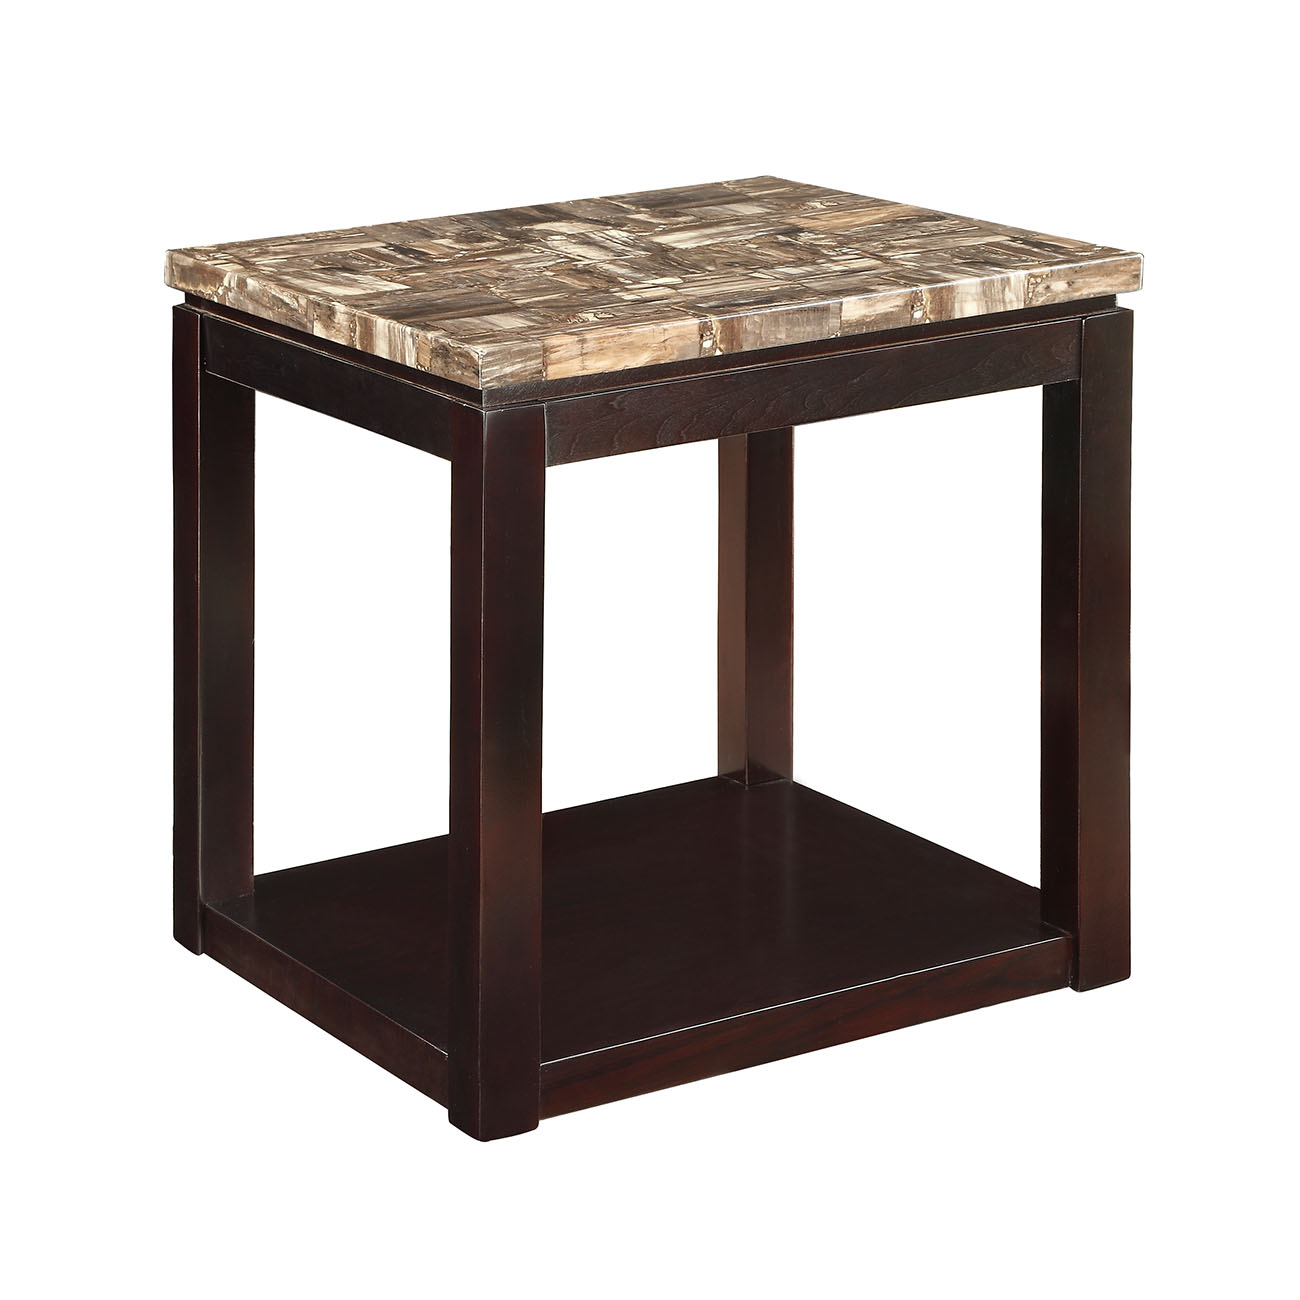 ACME Dusty End Table, Faux Marble & Espresso by Overstock